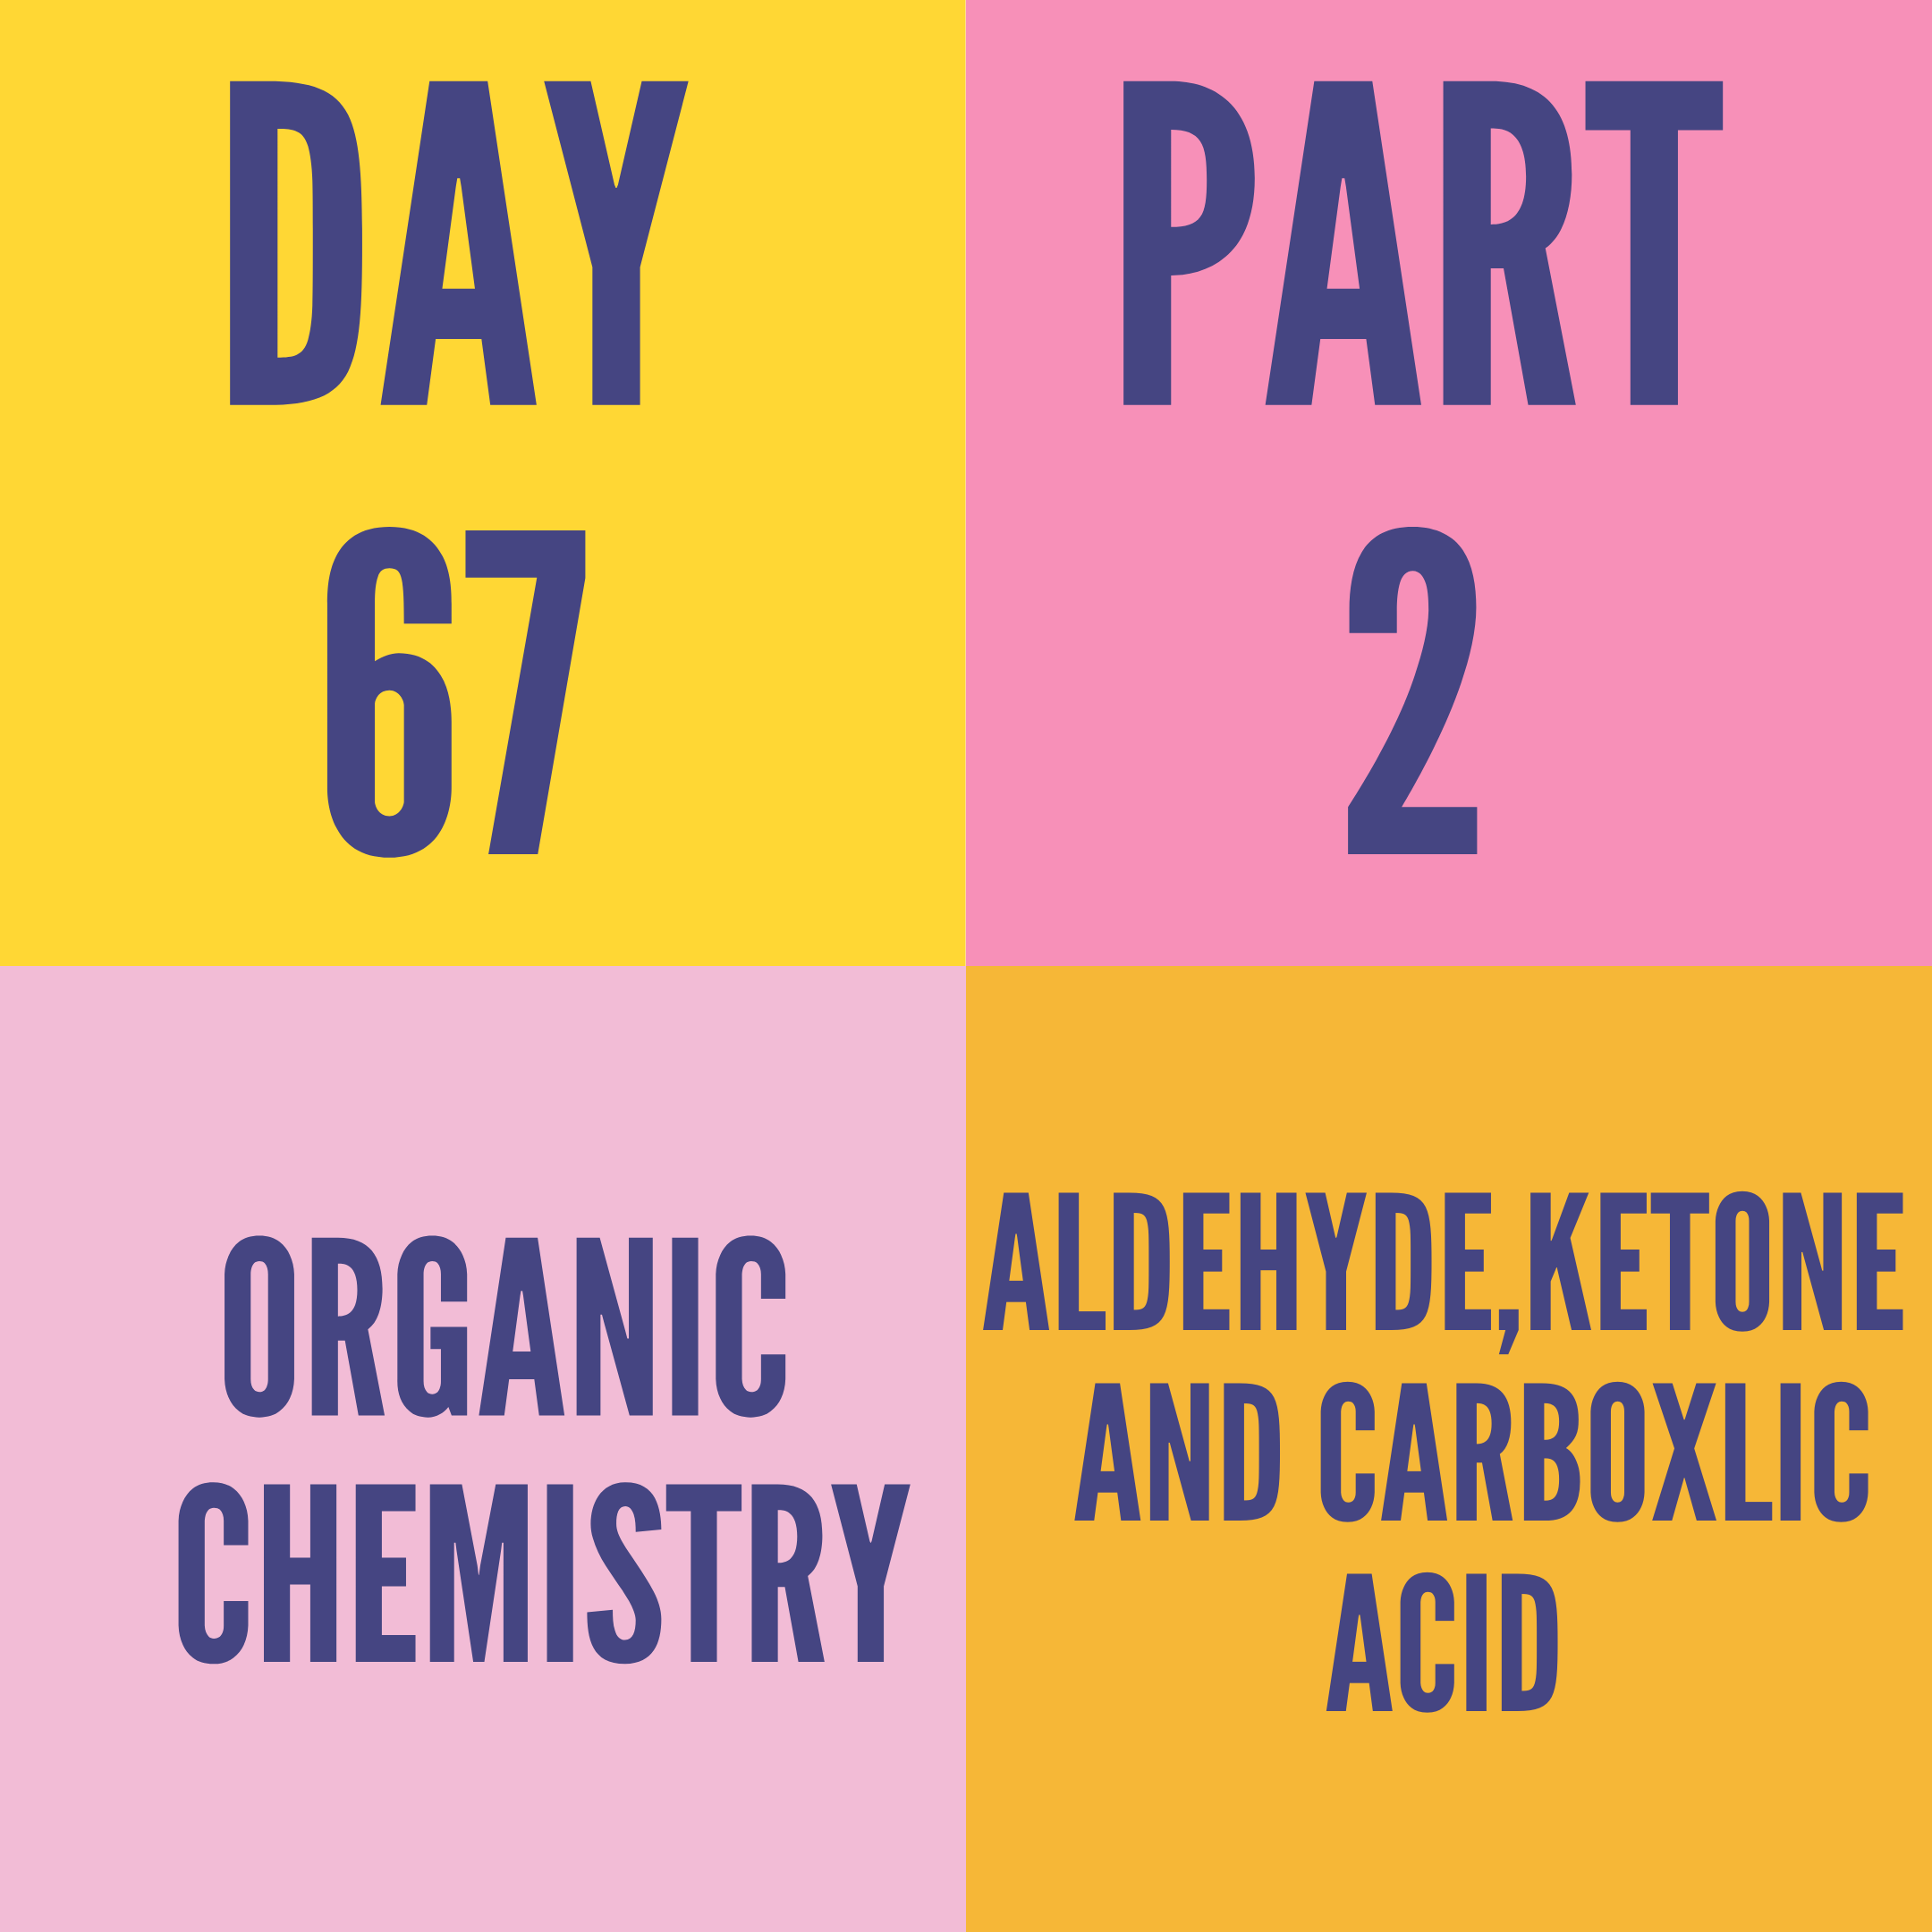 DAY-67 PART-2 ALDEHYDE,KETONE AND CARBOXLIC ACID